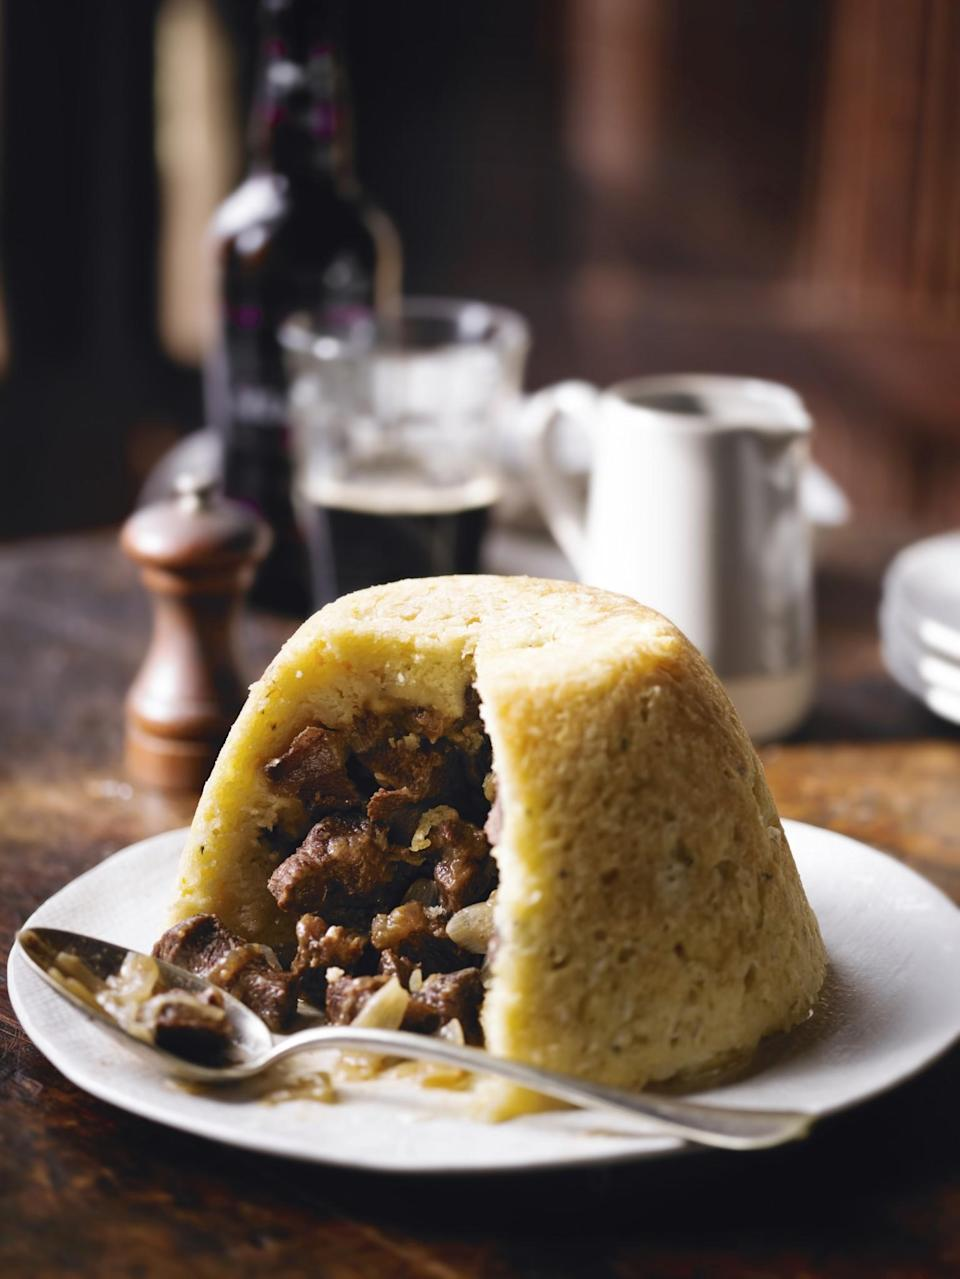 "<p>Pep up your average steak & kidney pudding with the addition of Guinness for a St Patrick's Day inspired dinner [Photo: <a href=""http://www.waitrose.com/recipes"" rel=""nofollow noopener"" target=""_blank"" data-ylk=""slk:www.waitrose.com/recipes"" class=""link rapid-noclick-resp"">www.waitrose.com/recipes</a>] </p>"